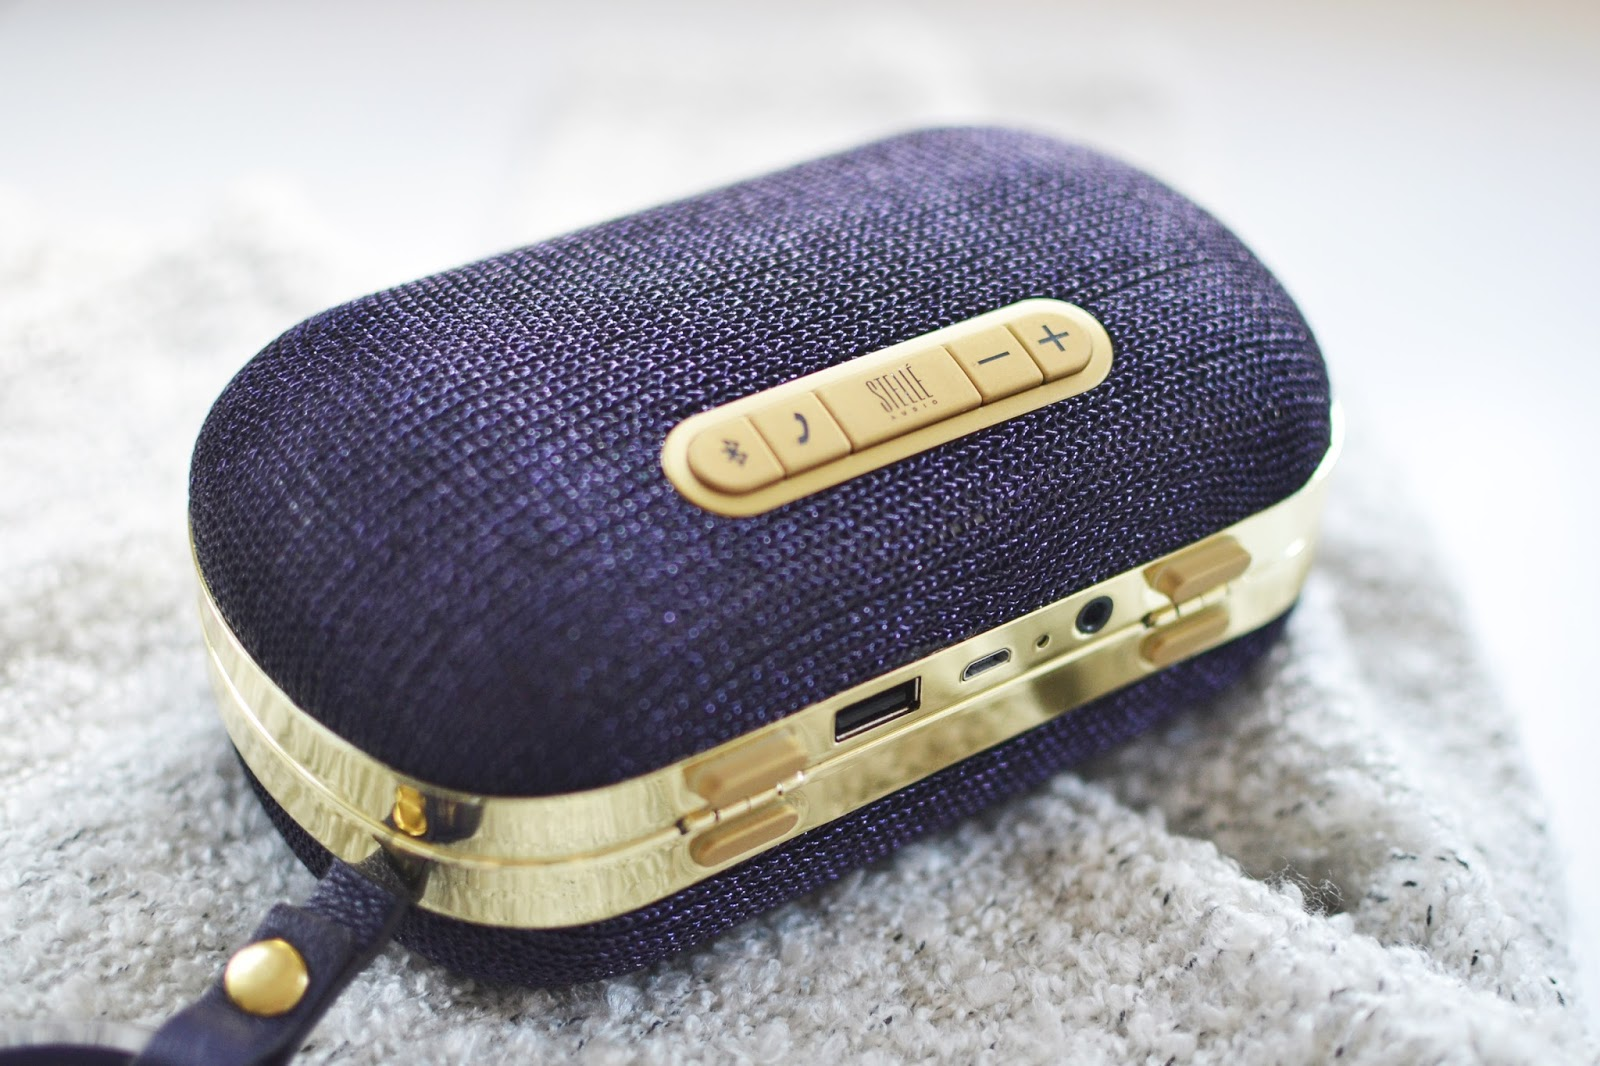 Stelle Audio Speaker Clutch Bag, wearable technology